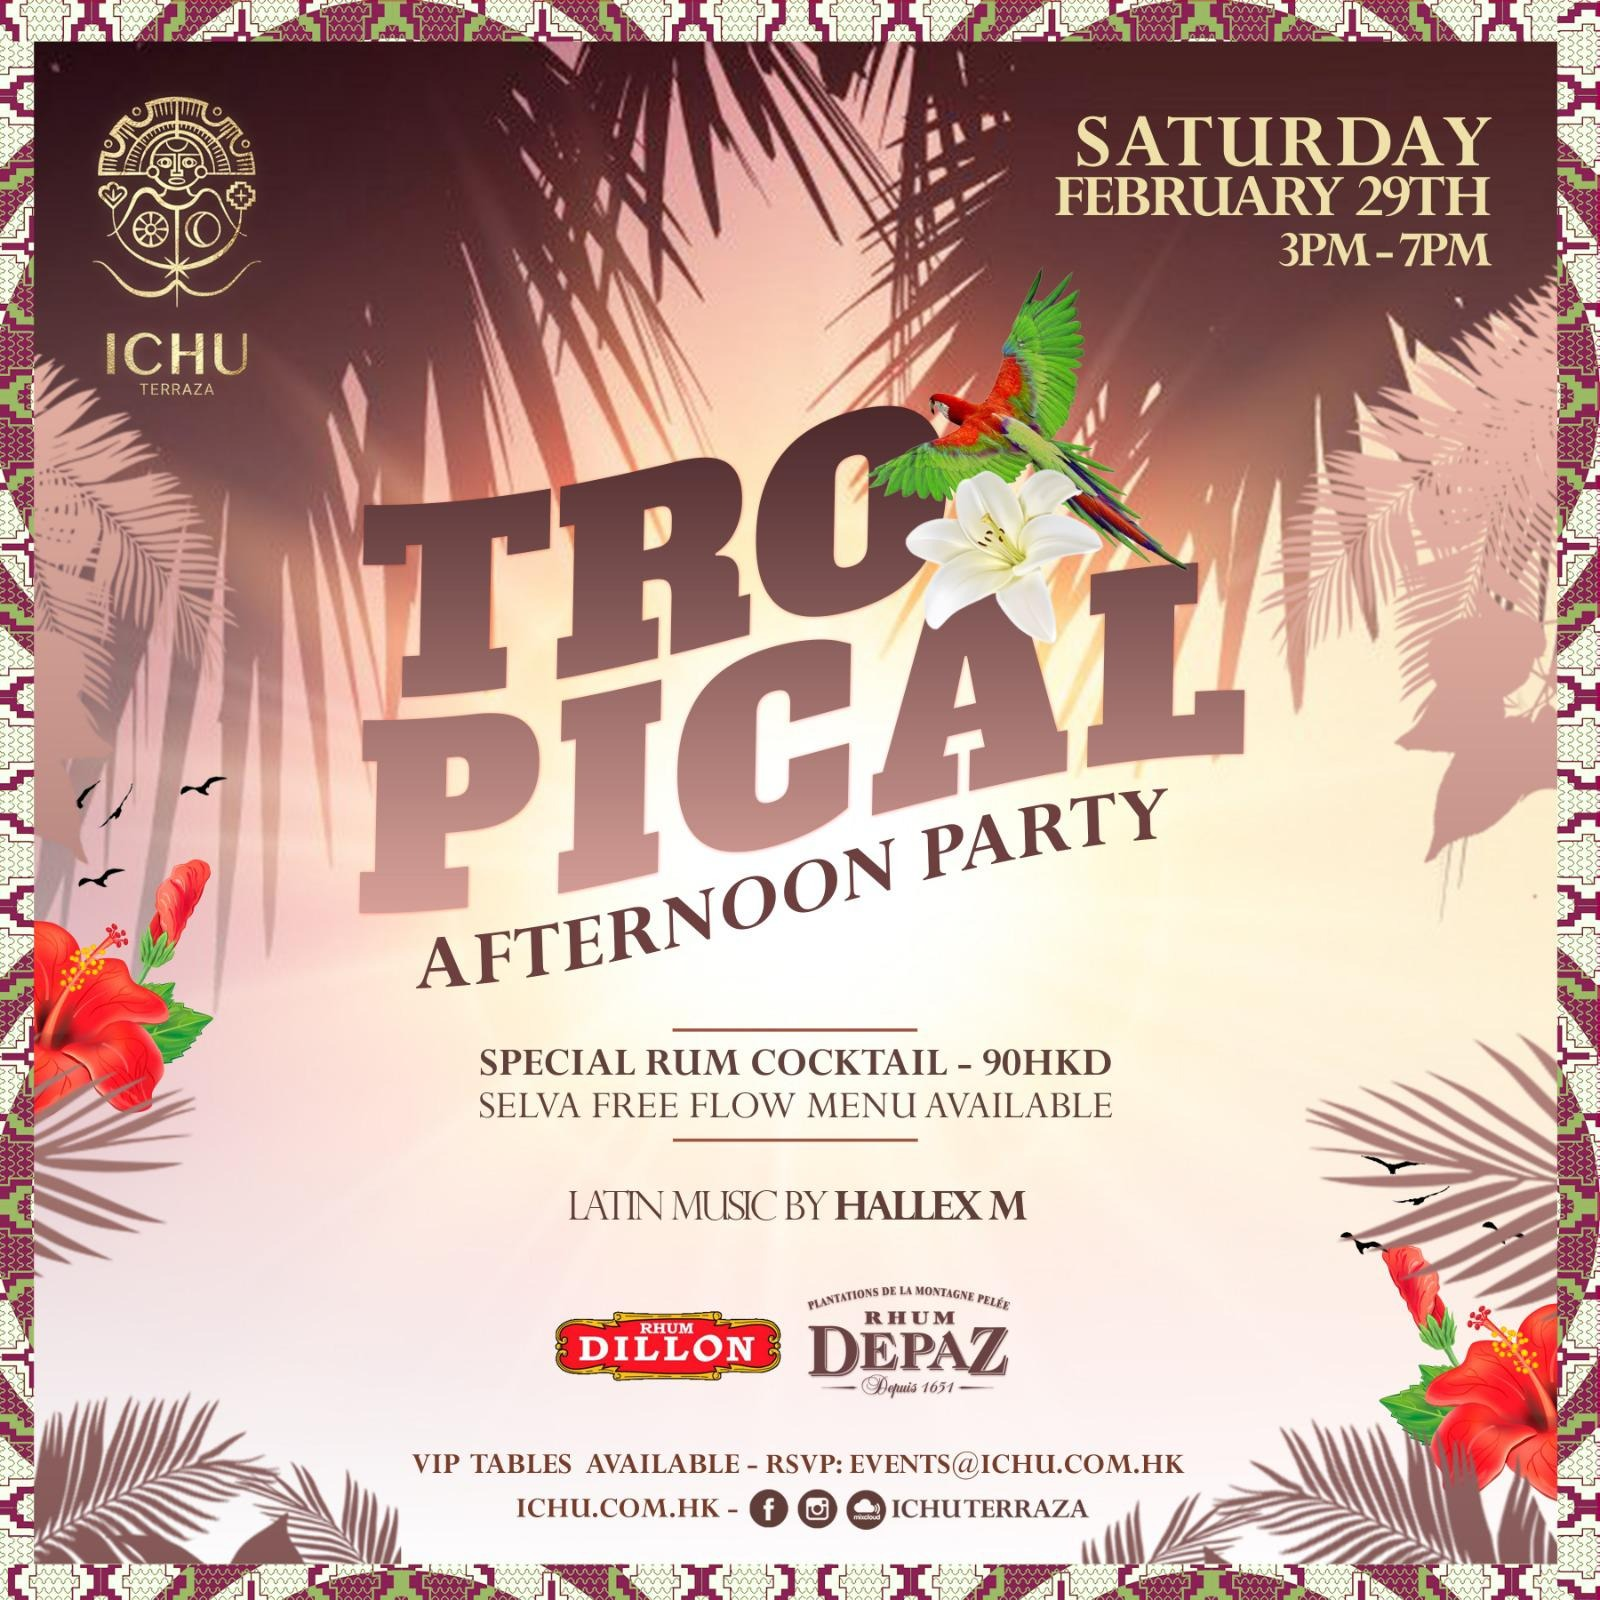 ICHU Restaurant & Bar | Events | TROPICAL AFTERNOON PARTY 4